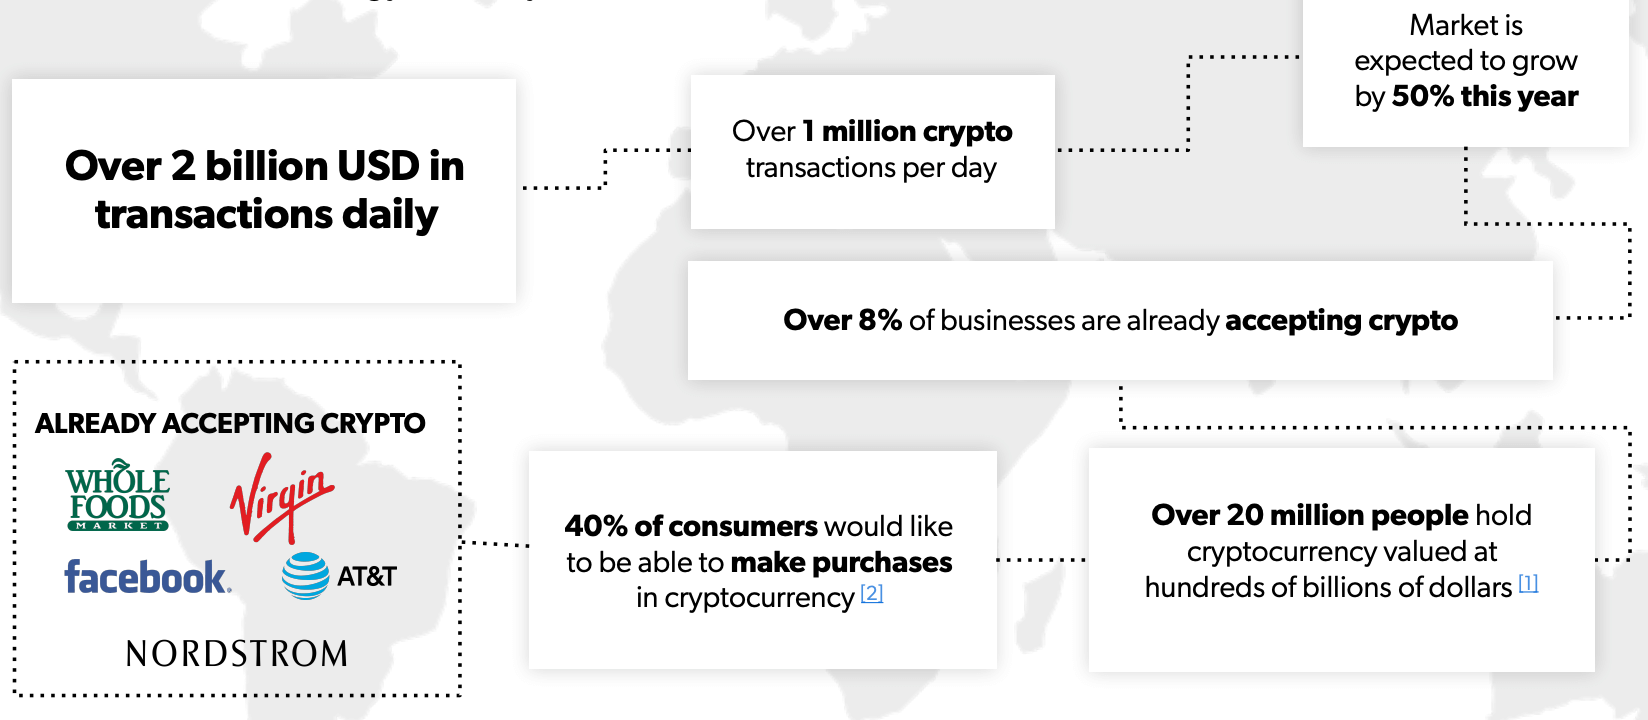 Millions of businesses and consumers have already adopted cryptocurrency payments.